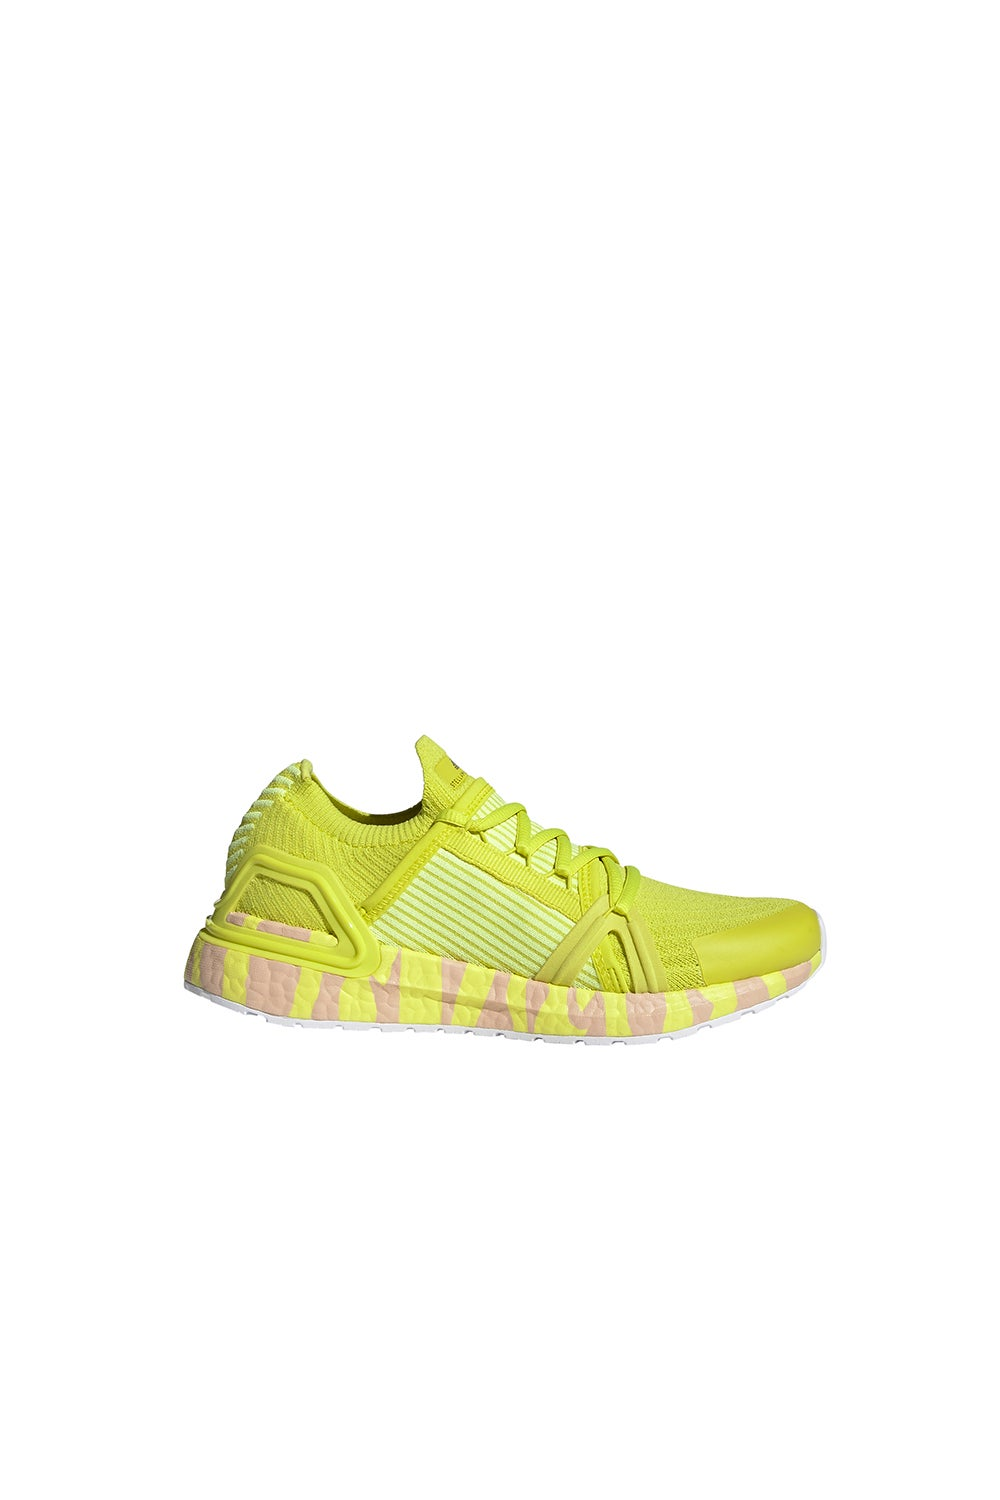 adidas by Stella McCartney UltraBOOST 20 Shoes Acid Yellow